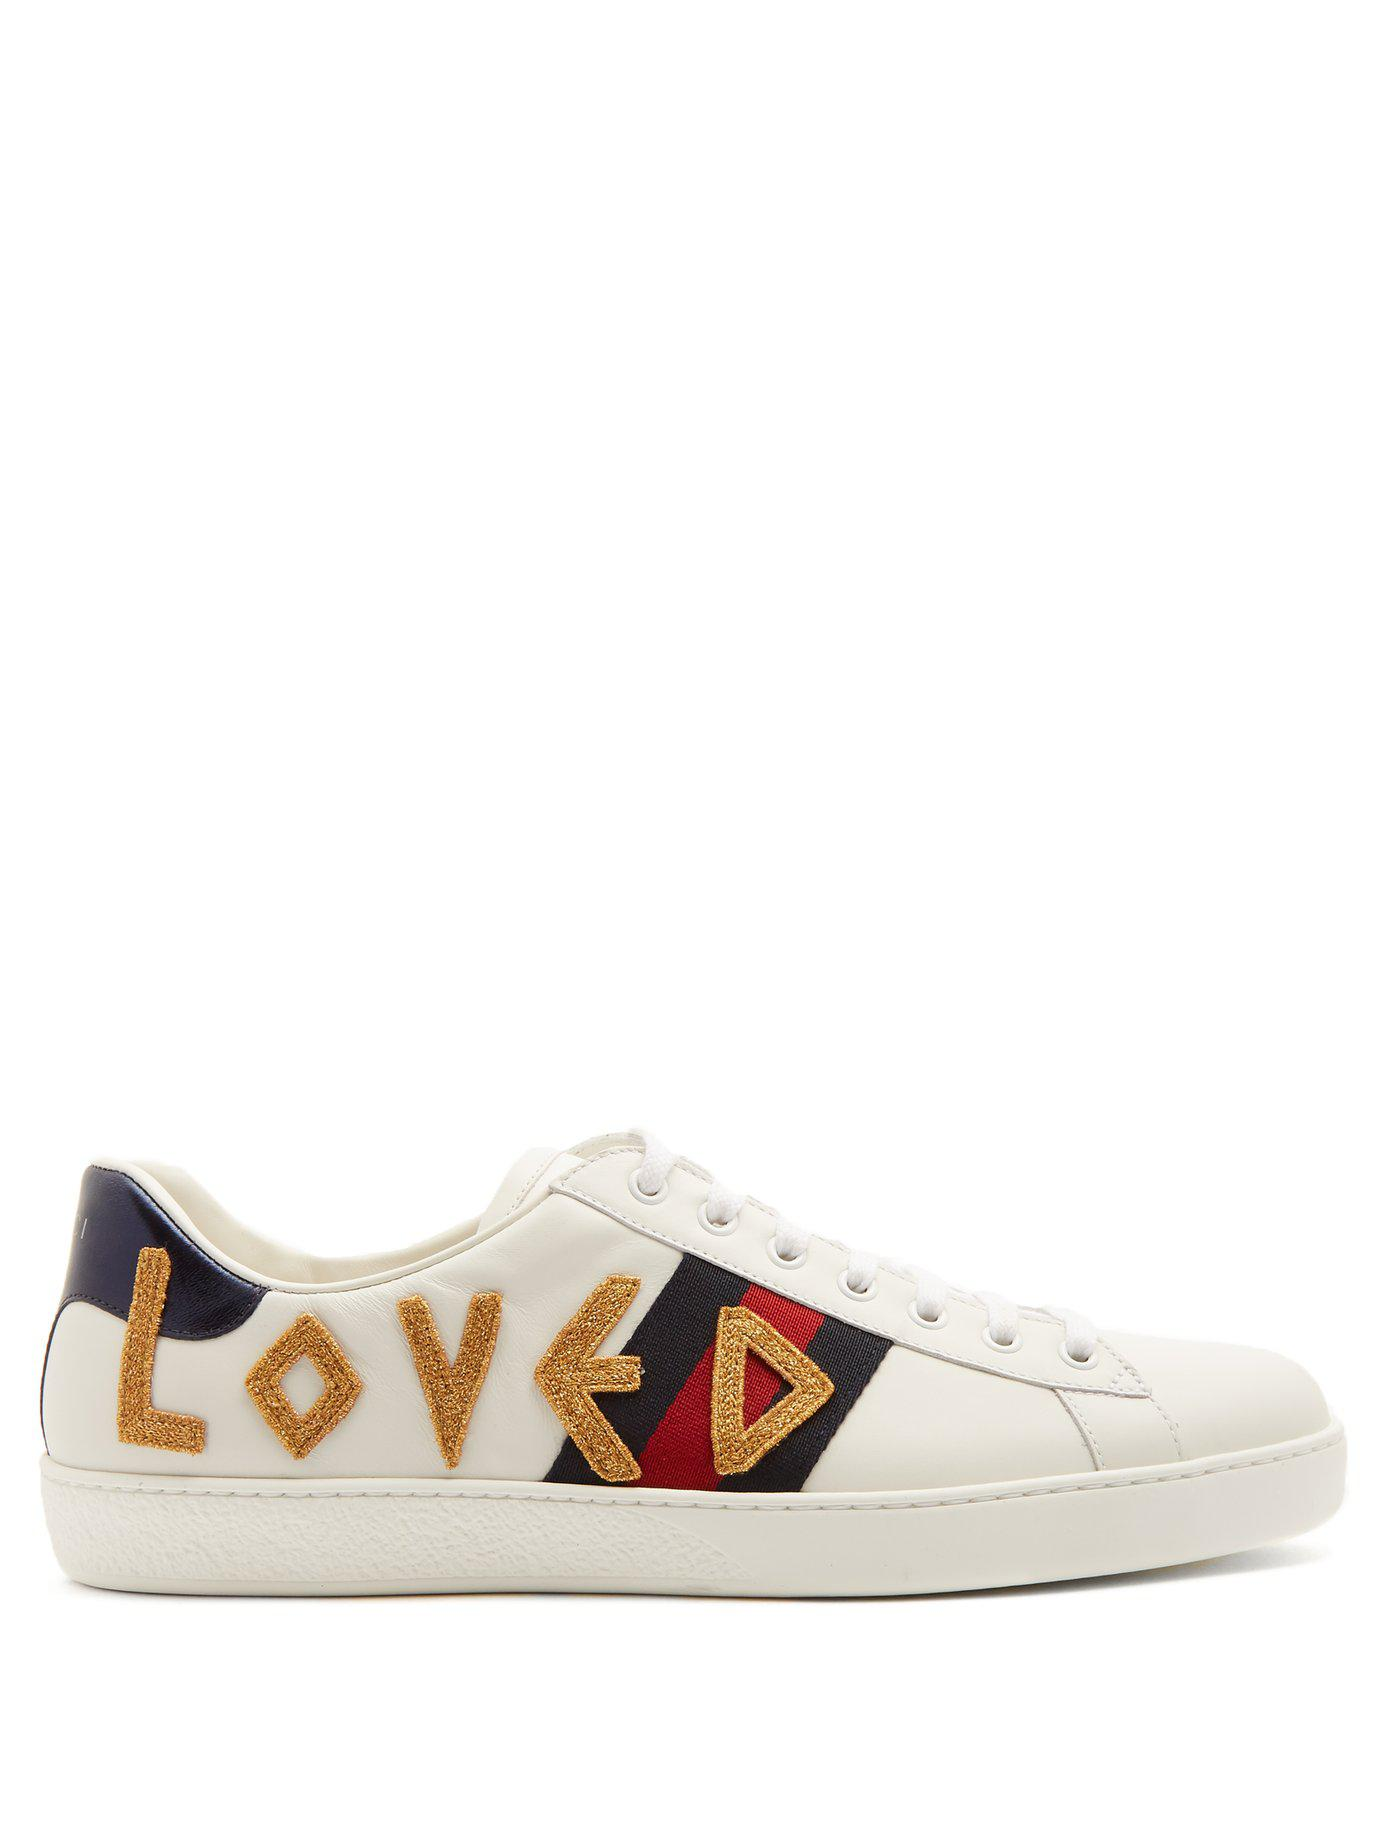 ebc5223825d Lyst - Gucci New Ace Embroidered Leather Trainers in White for Men